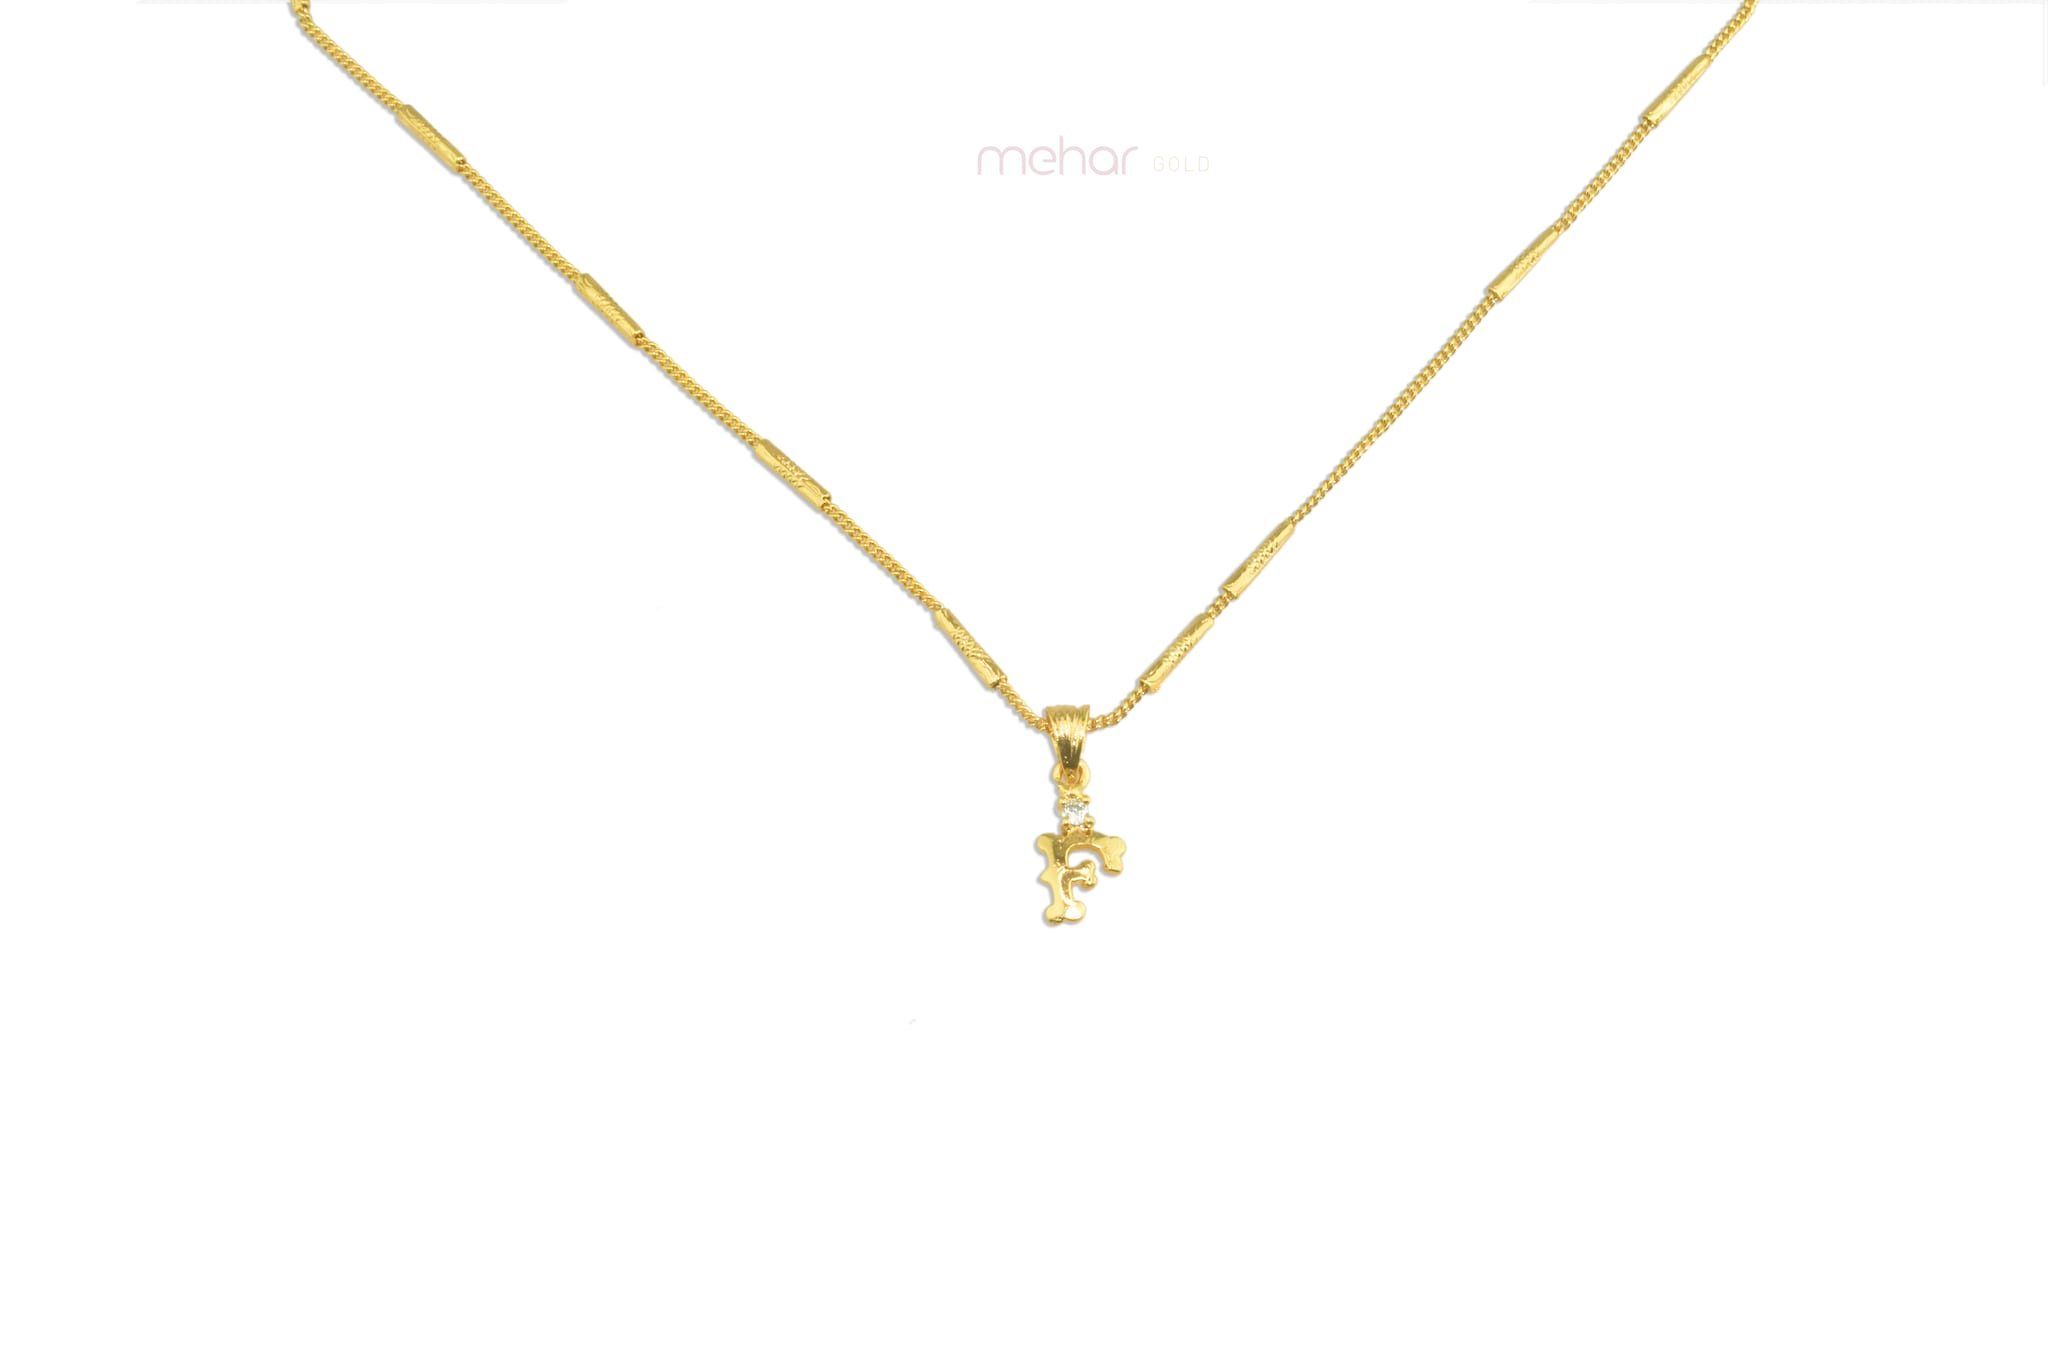 Chain With Locket 0084 (18 inch)